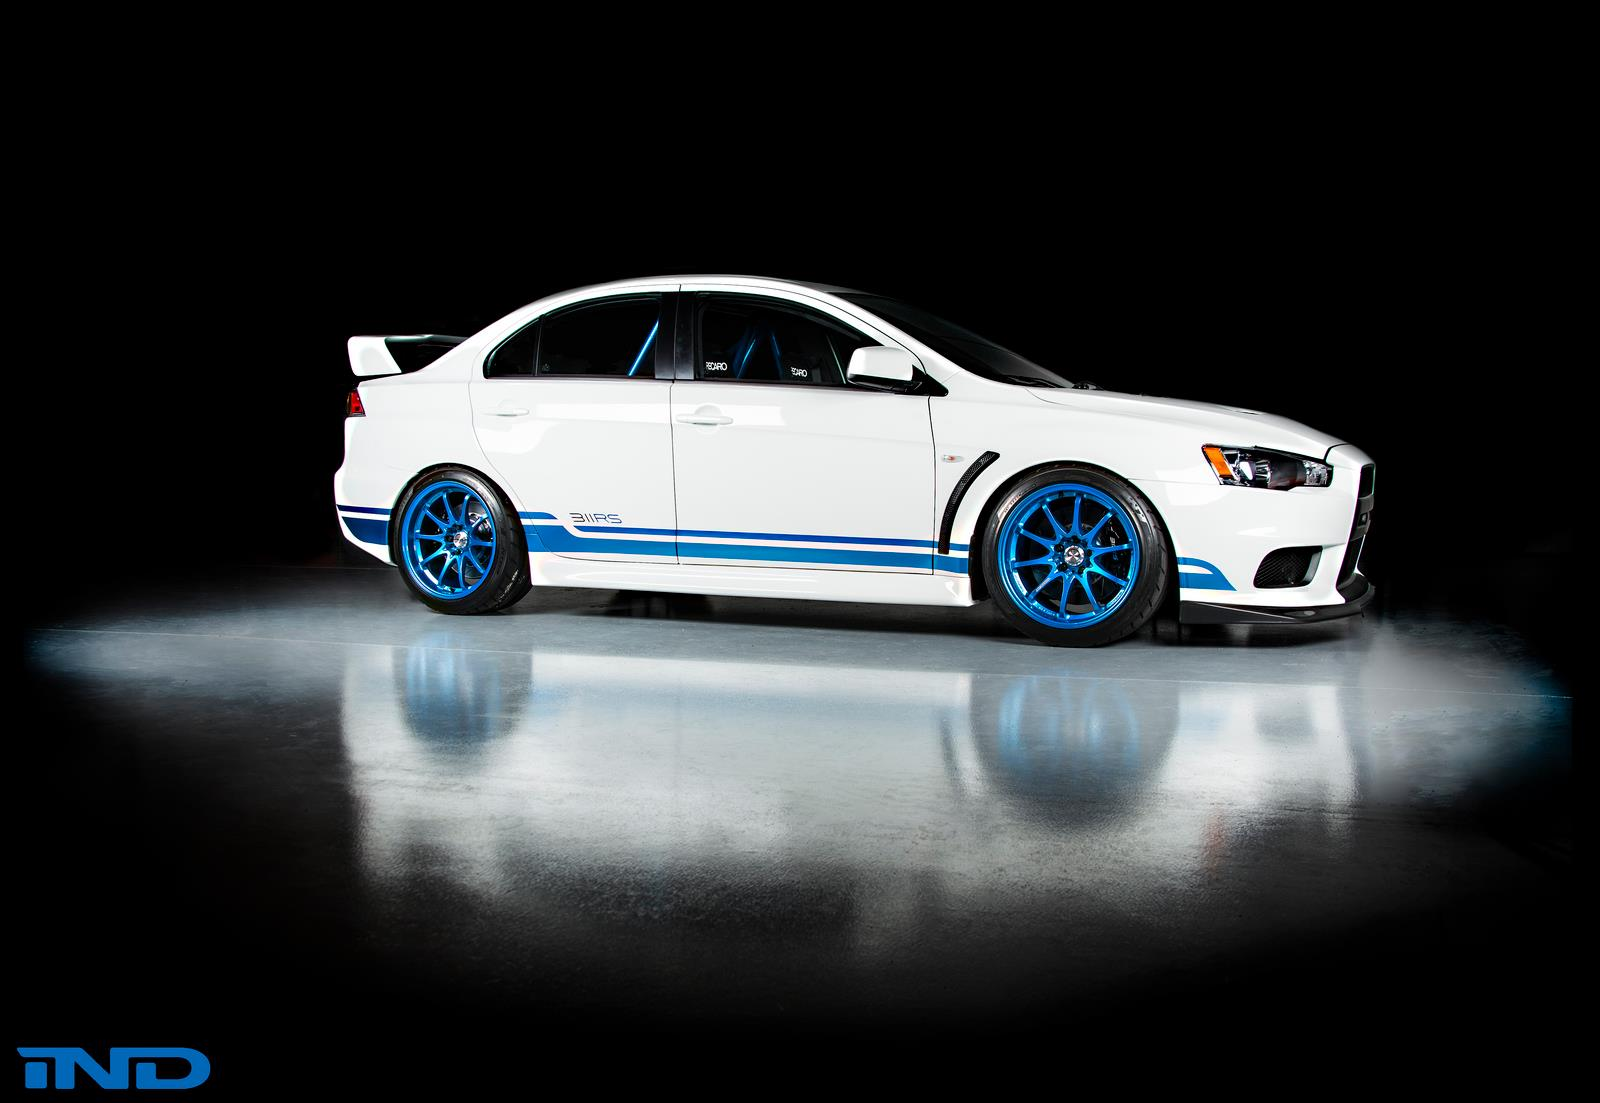 http://www.automobilesreview.com/img/ind-mitsubishi-evo-x-311rs/ind-mitsubishi-evo-x-311rs-06.jpg